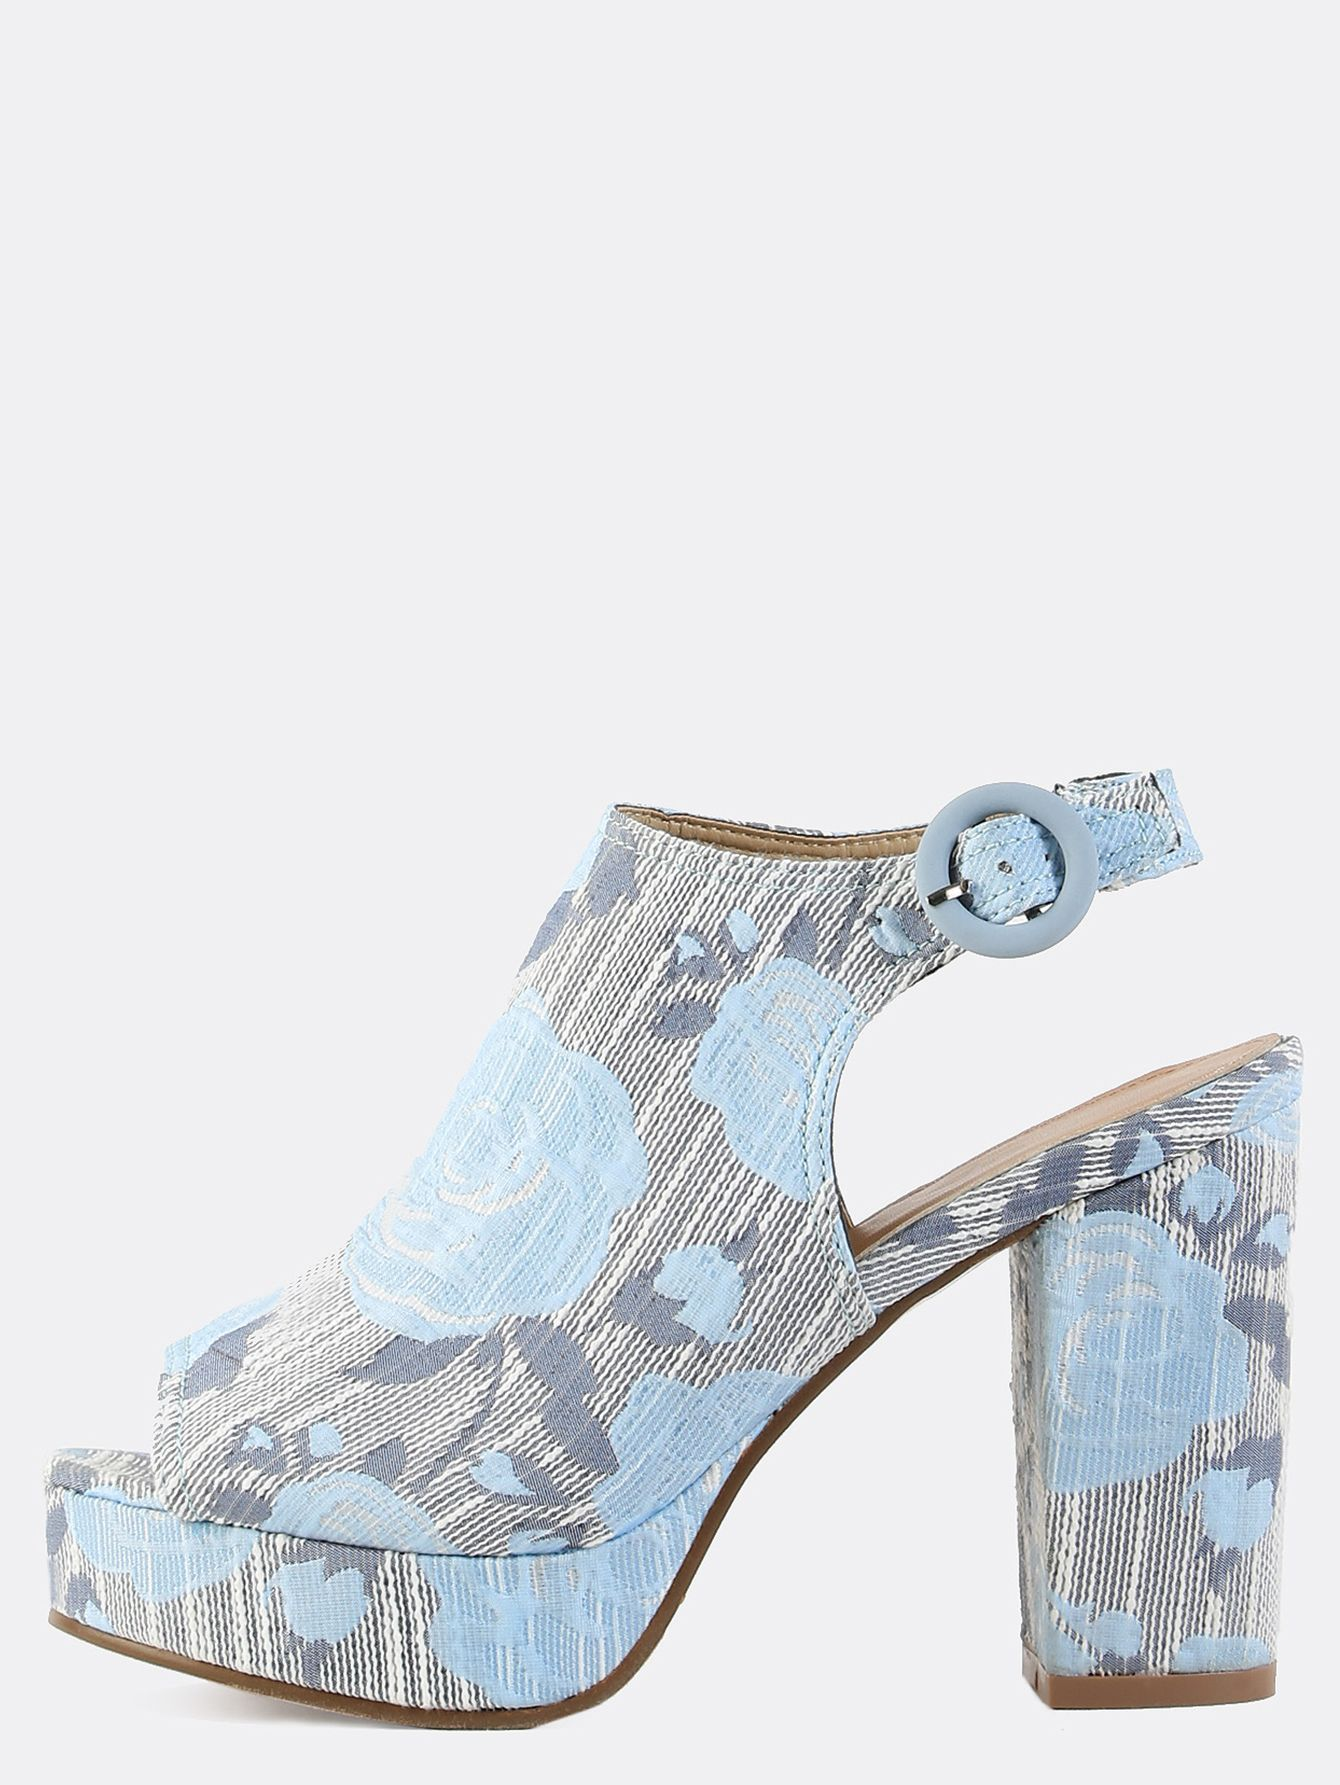 647b3141fbb Make your outfit sweet and adorable with the Platform Floral Chunky Mule  Heels! Features a peep toe